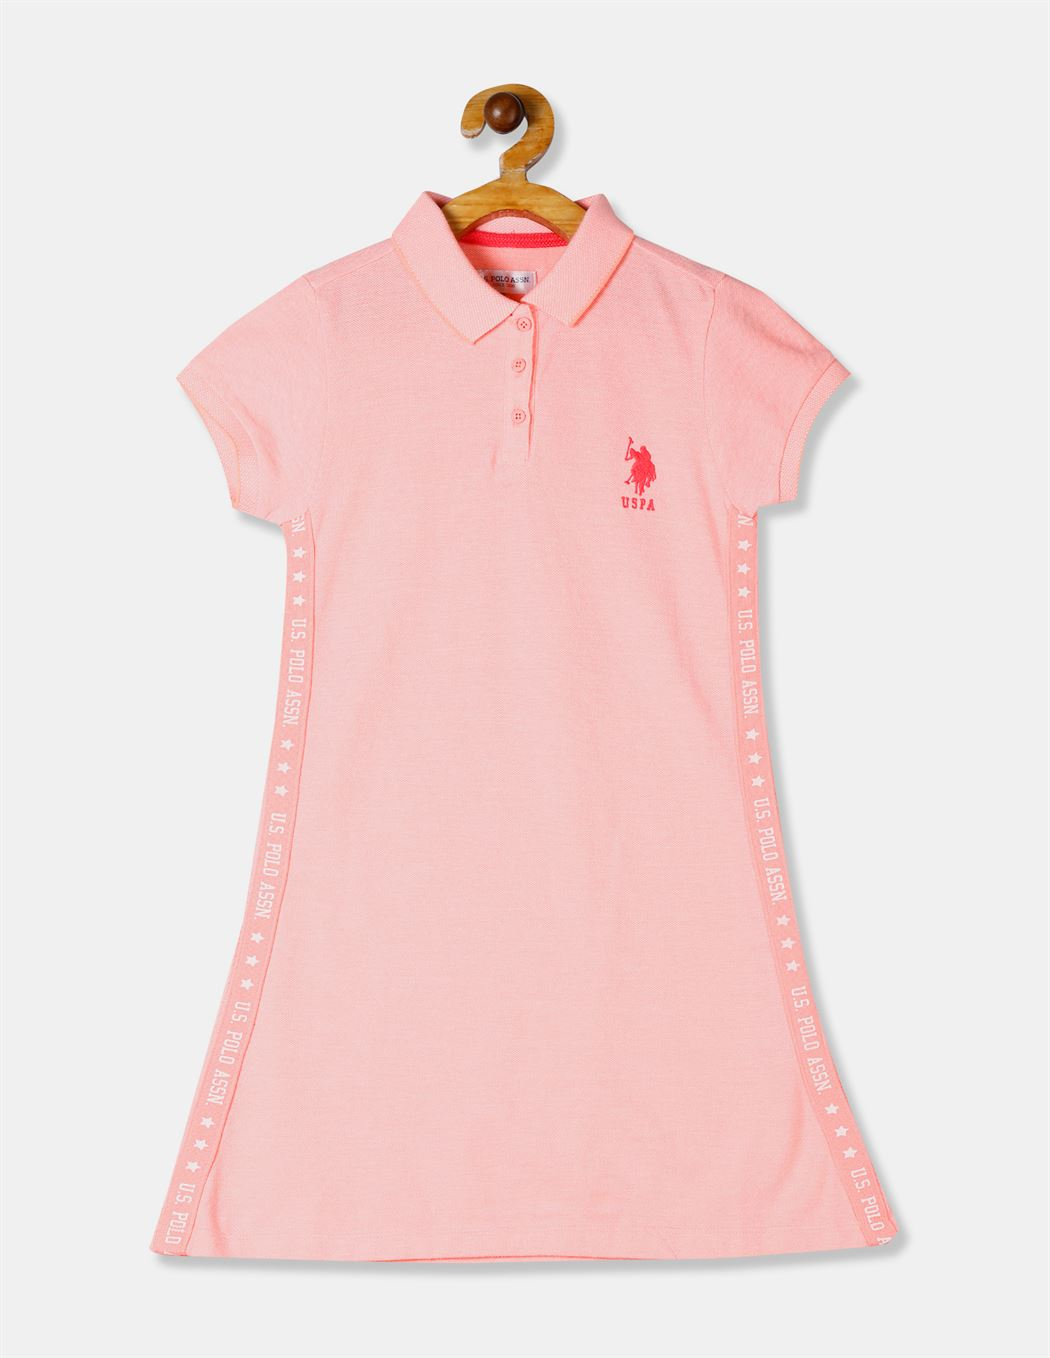 U.S. Polo Assn. Girls Orange Solid Polo Shirt Dress